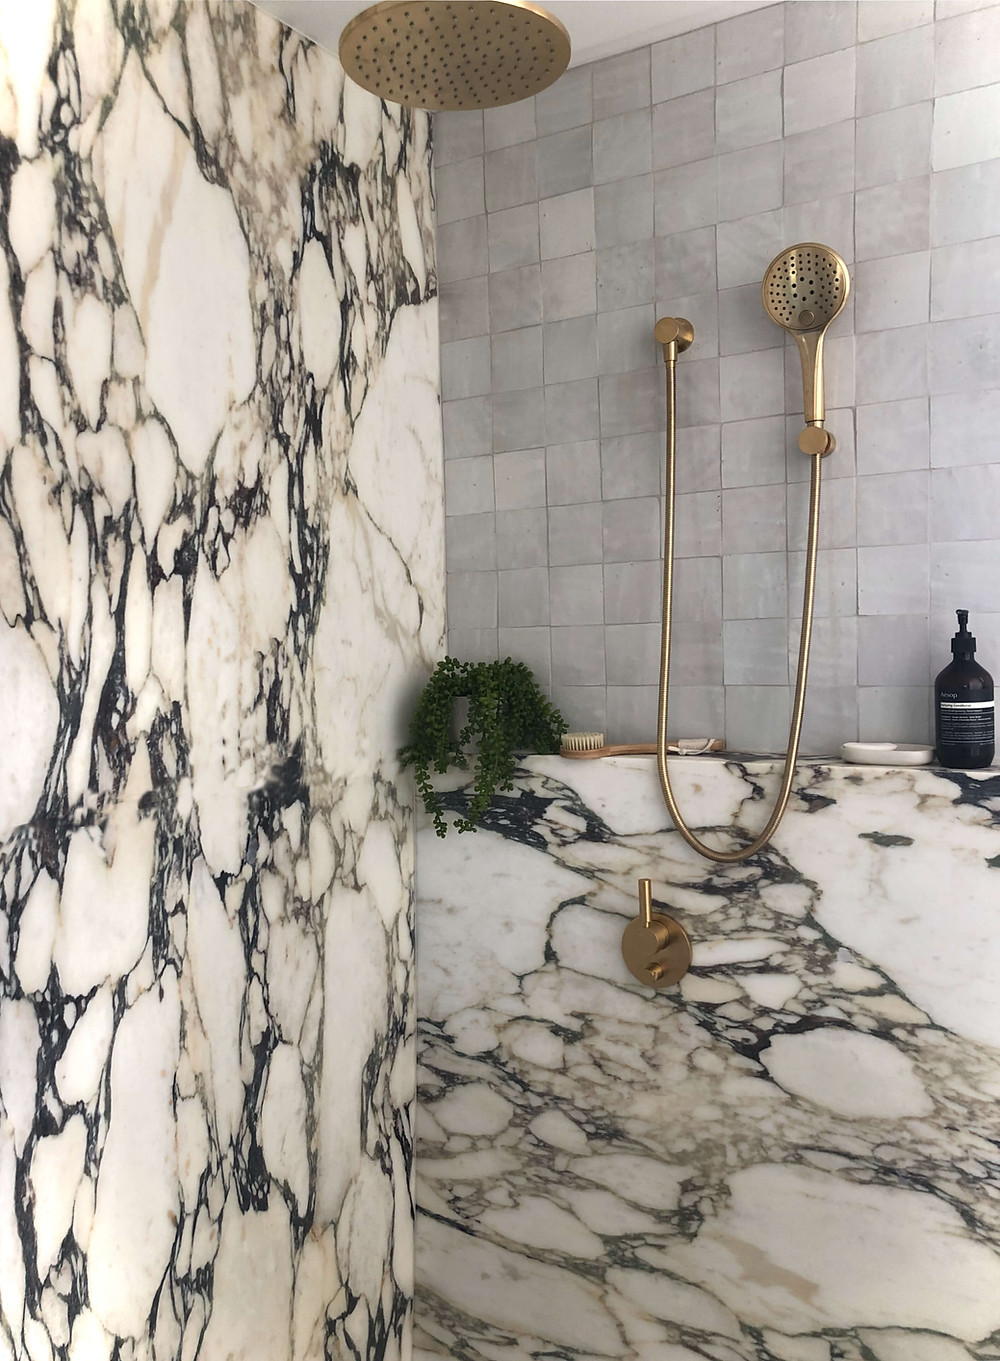 Luxury shower with large calacatta viola Antiqua marble slabs on the wall and creating a bath shelf. On top of the wall is clé ceramic square tiles in a beige colour. Also shown is a brushed brass waterfall shower and a matching handheld shower. Sitting on the shelf is a dangling plant and Aesop shampoo and a cream-coloured soap dish.